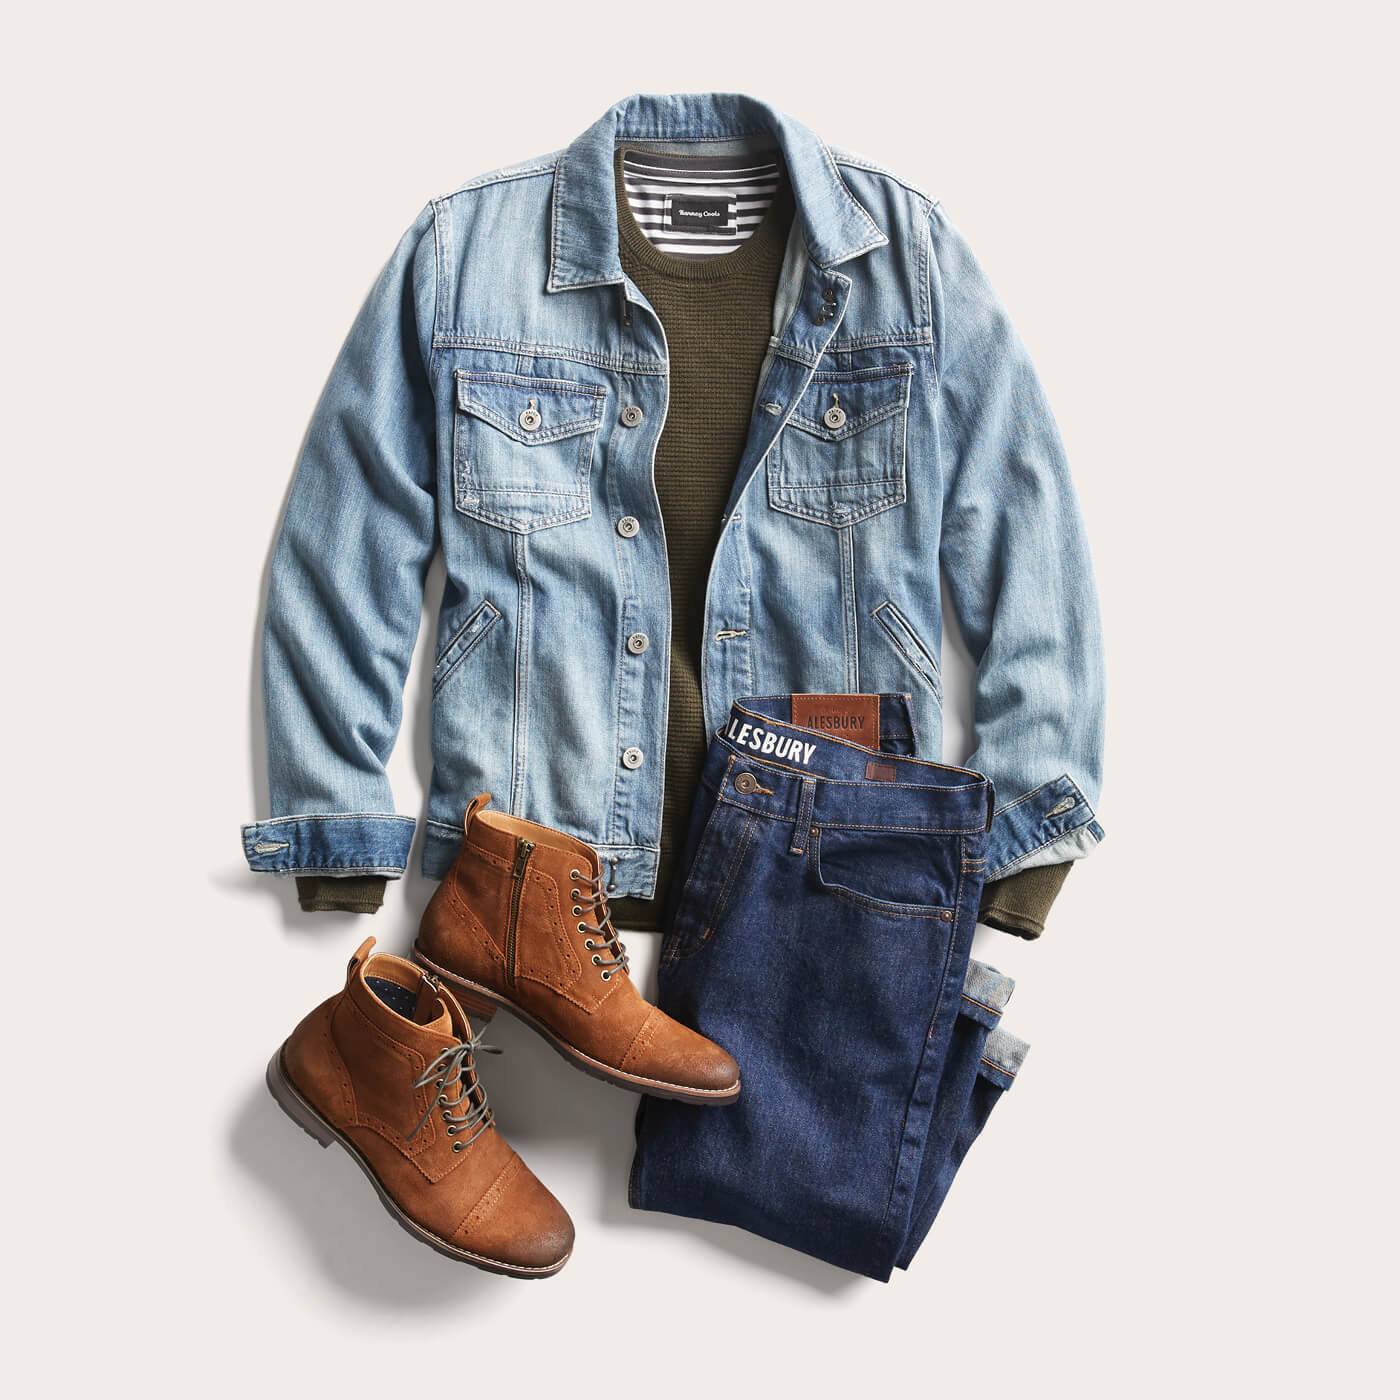 df8b35ba8a2 What do I wear with a jean jacket